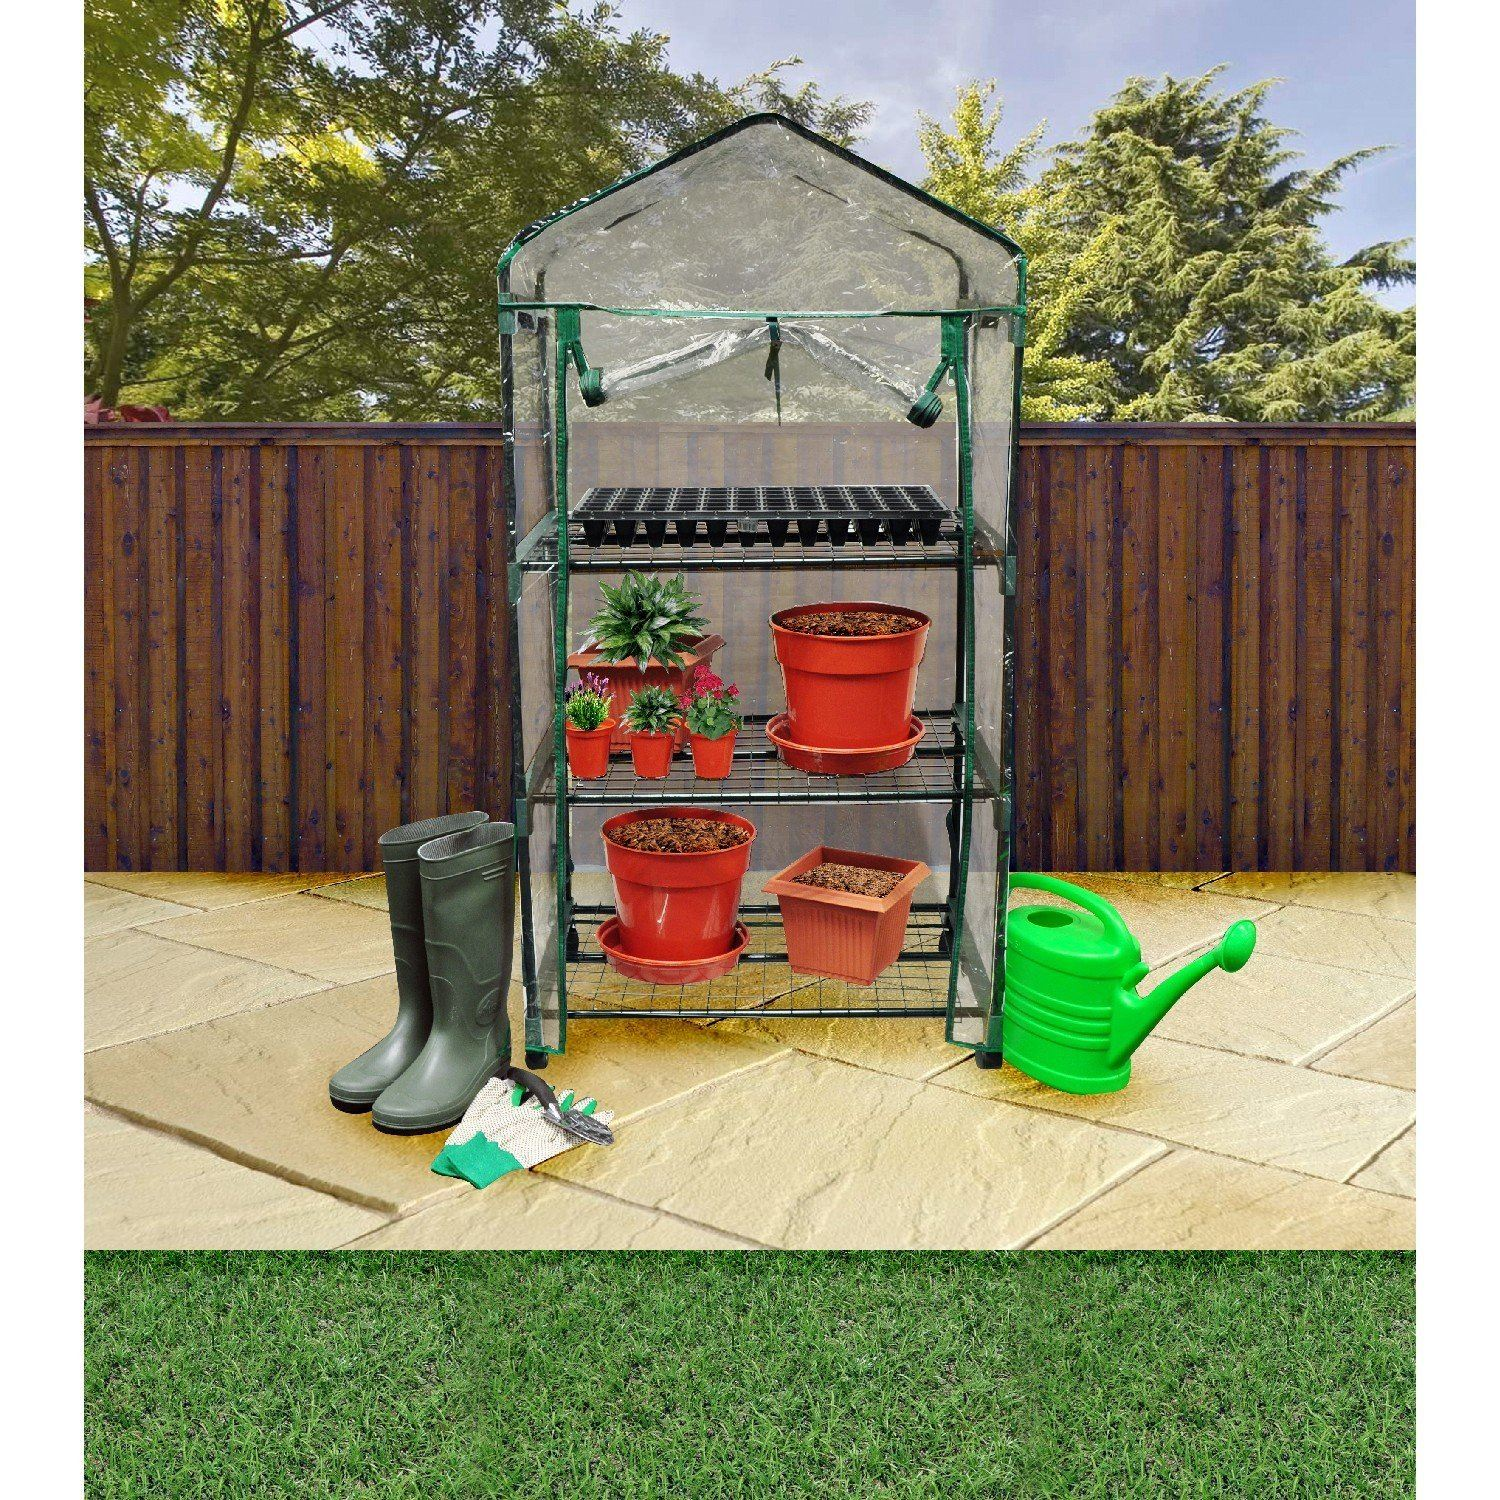 Kingfisher 3 Tier Greenhouse on Wheels Multi-Colour